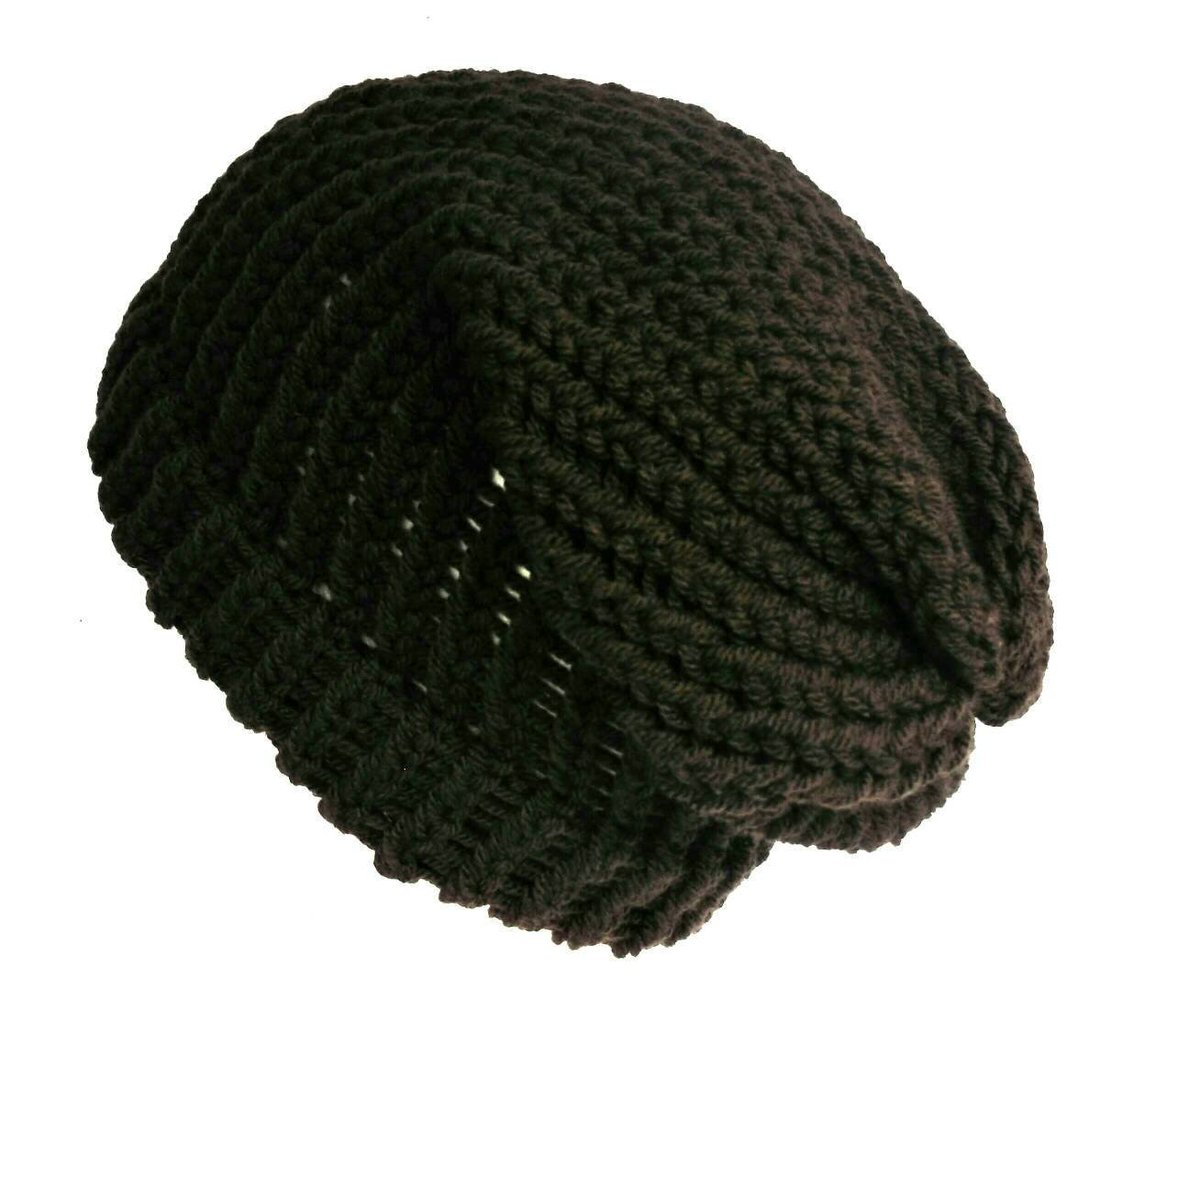 f1dbba79 Dark brown slouchy beanie, loose knit slouch hat handmade with soft acrylic  wool, unisex winter beanie hat or dreadlock tam https://etsy.me/2NOgOHl ...